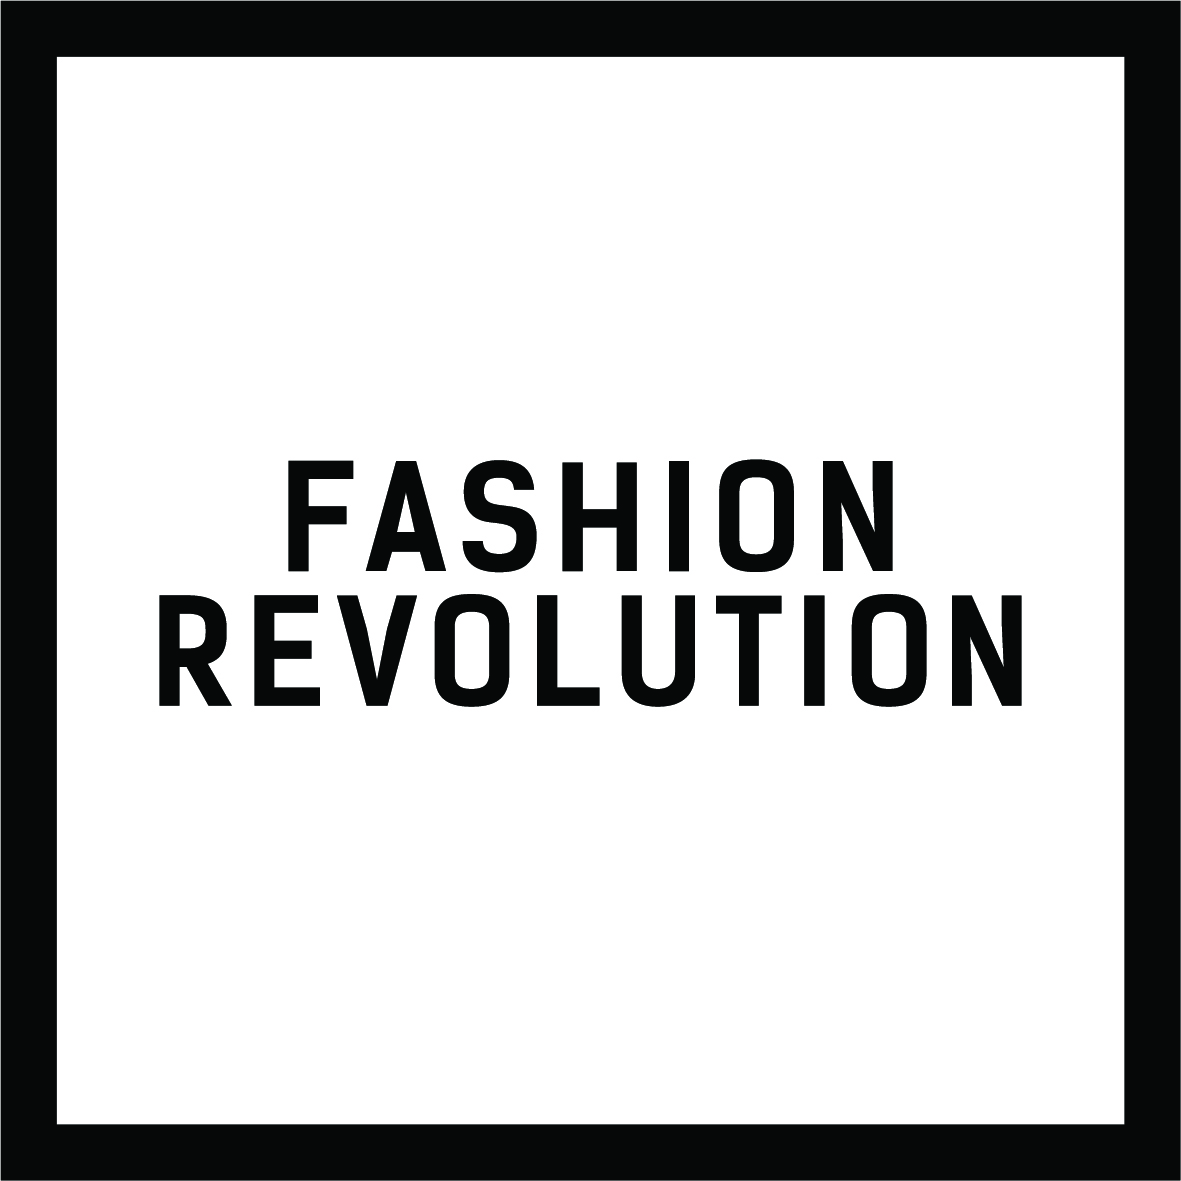 fashion revolution.jpg